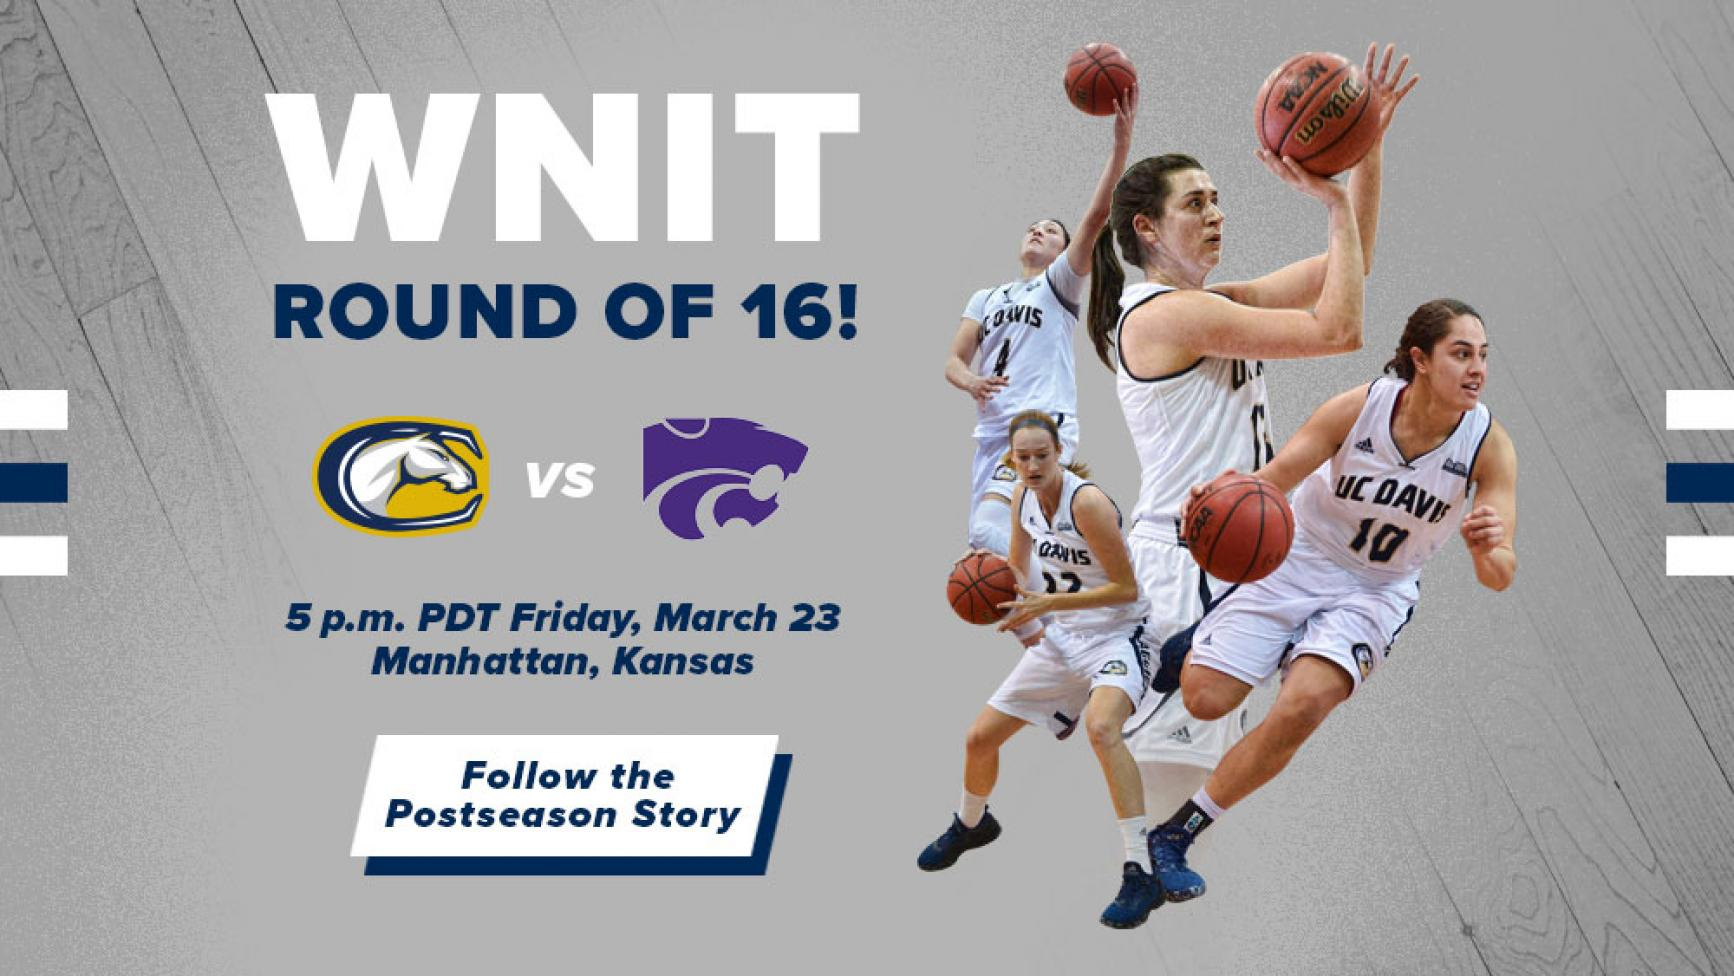 Go Ags! Women's Basketball team heads to round of 16 for the NIT tournament!